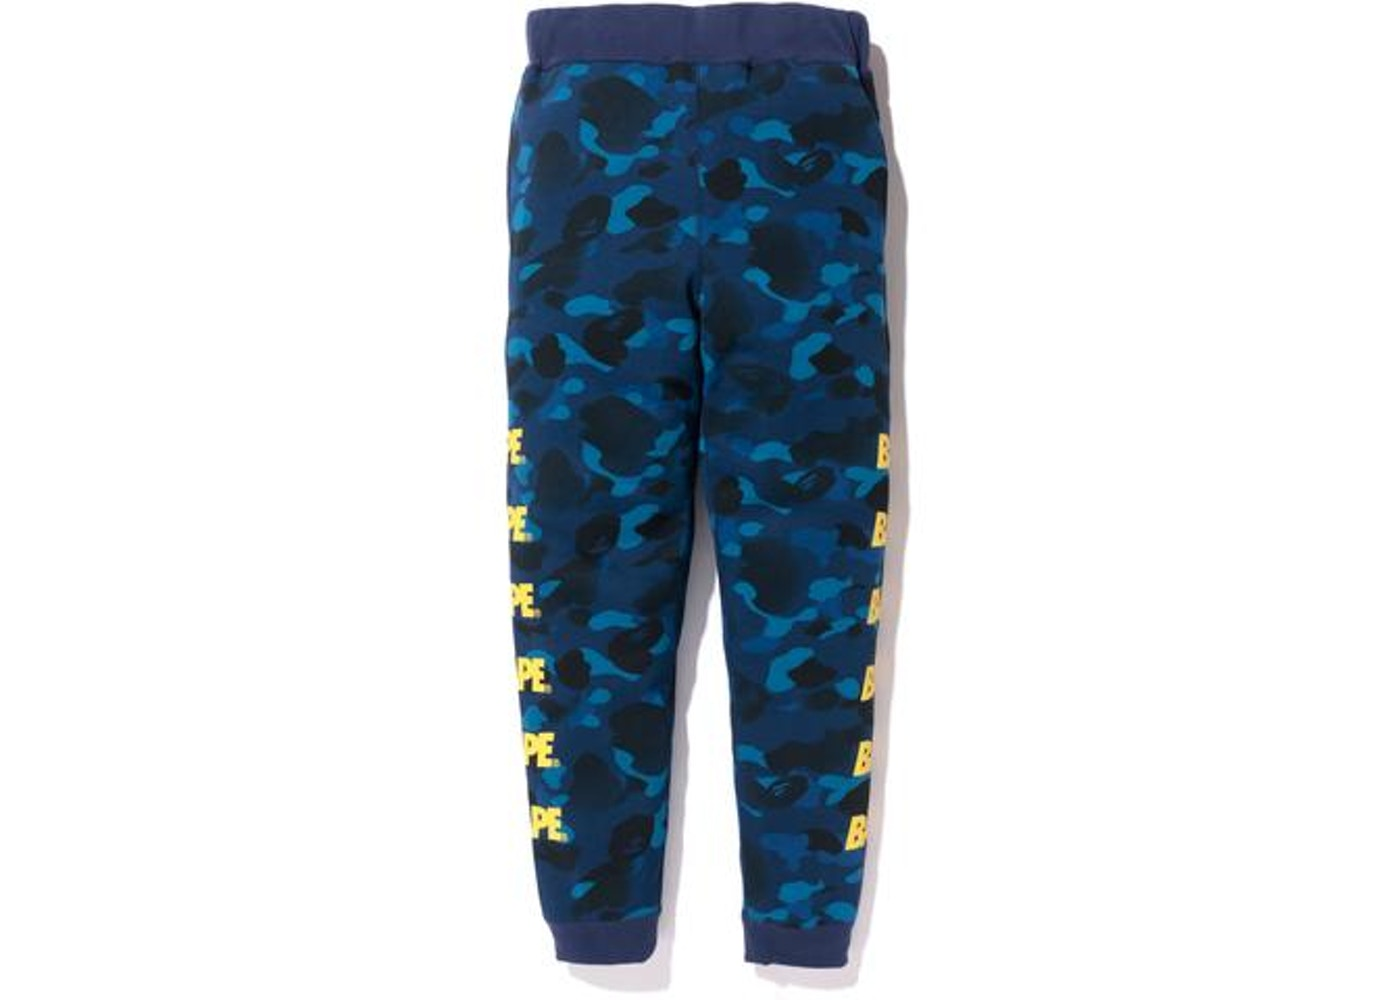 620ab7d6 BAPE Gradation Camo Slim Sweat Pants Pants Navy -